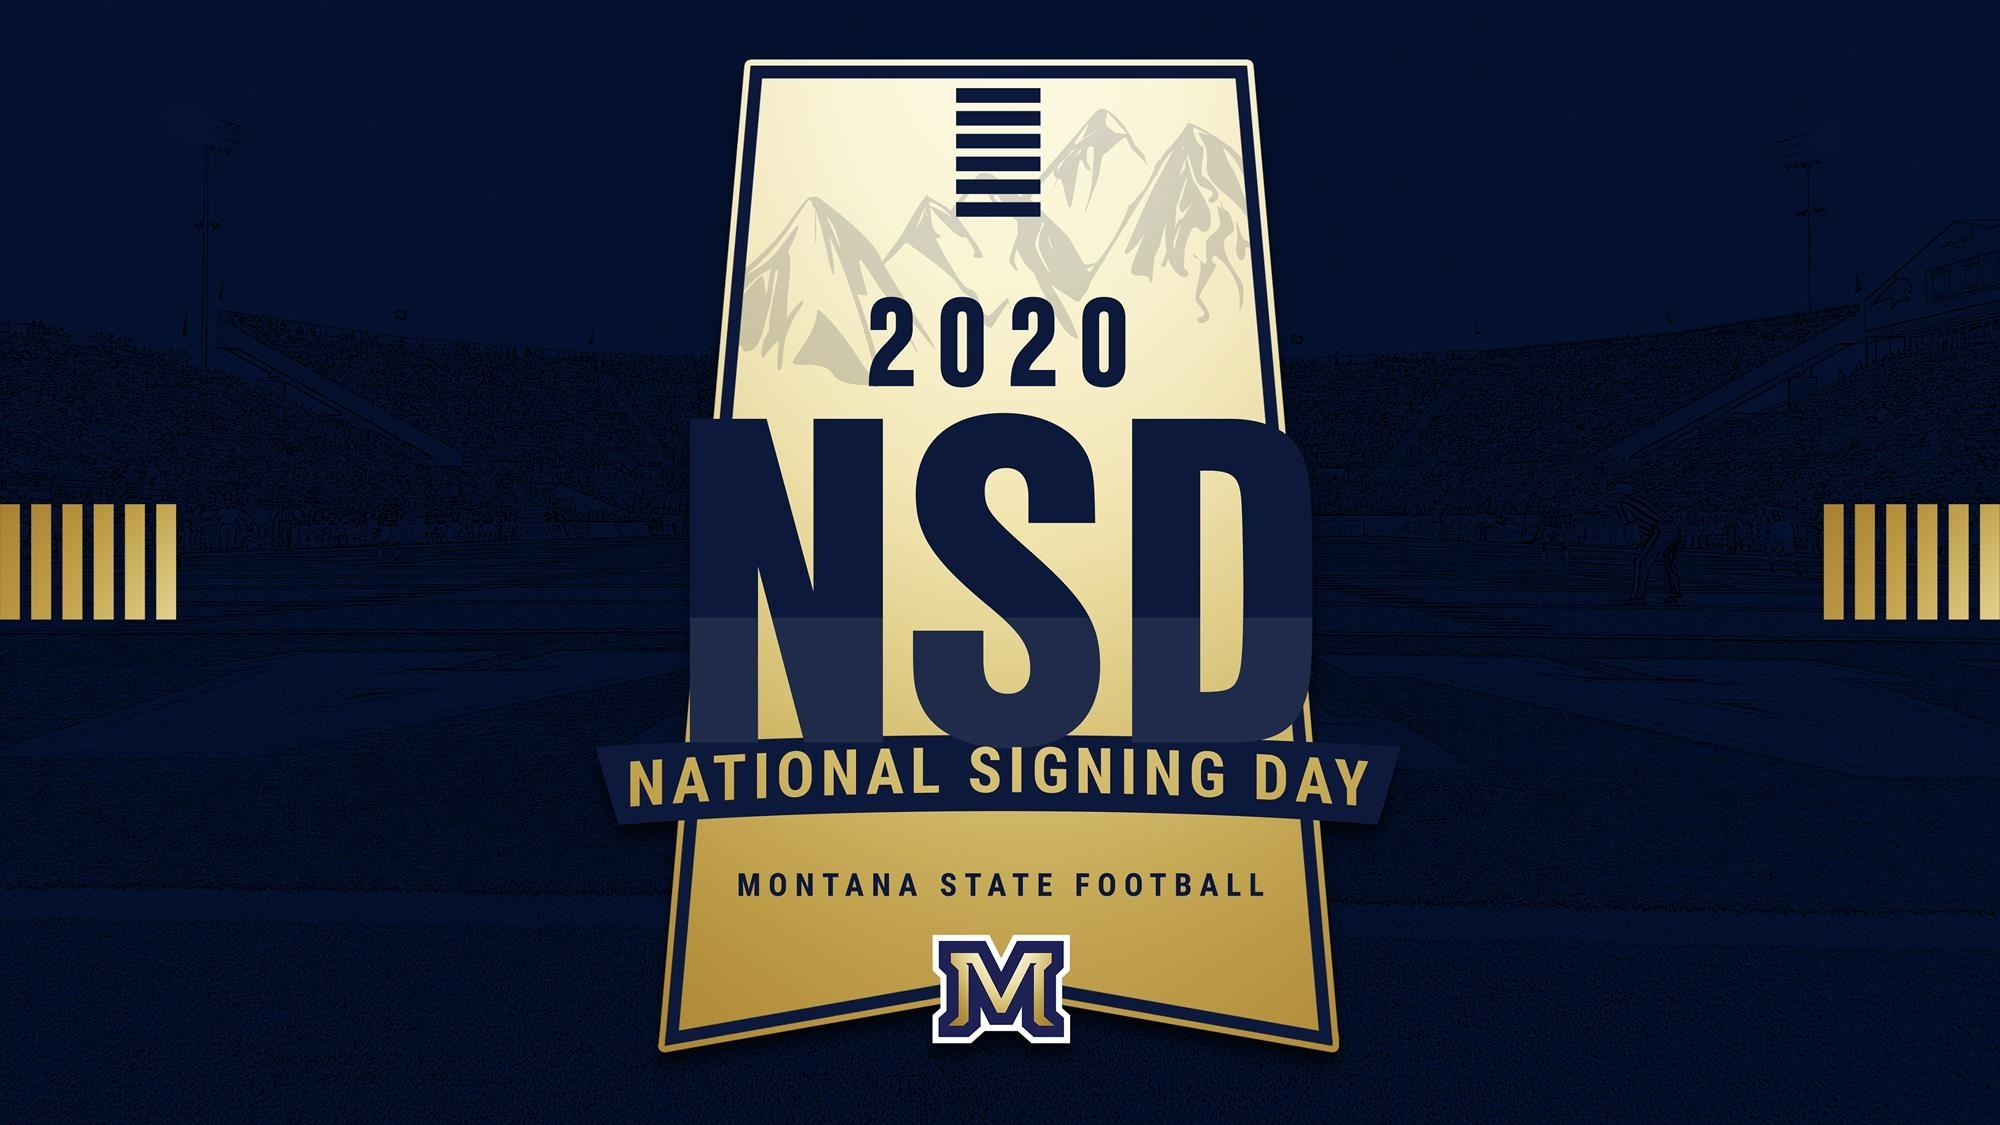 Montana State Recruiting 2020: Cats Land 23 Newcomers As inside Catholic Extension Calendar 2020 Free Pdf